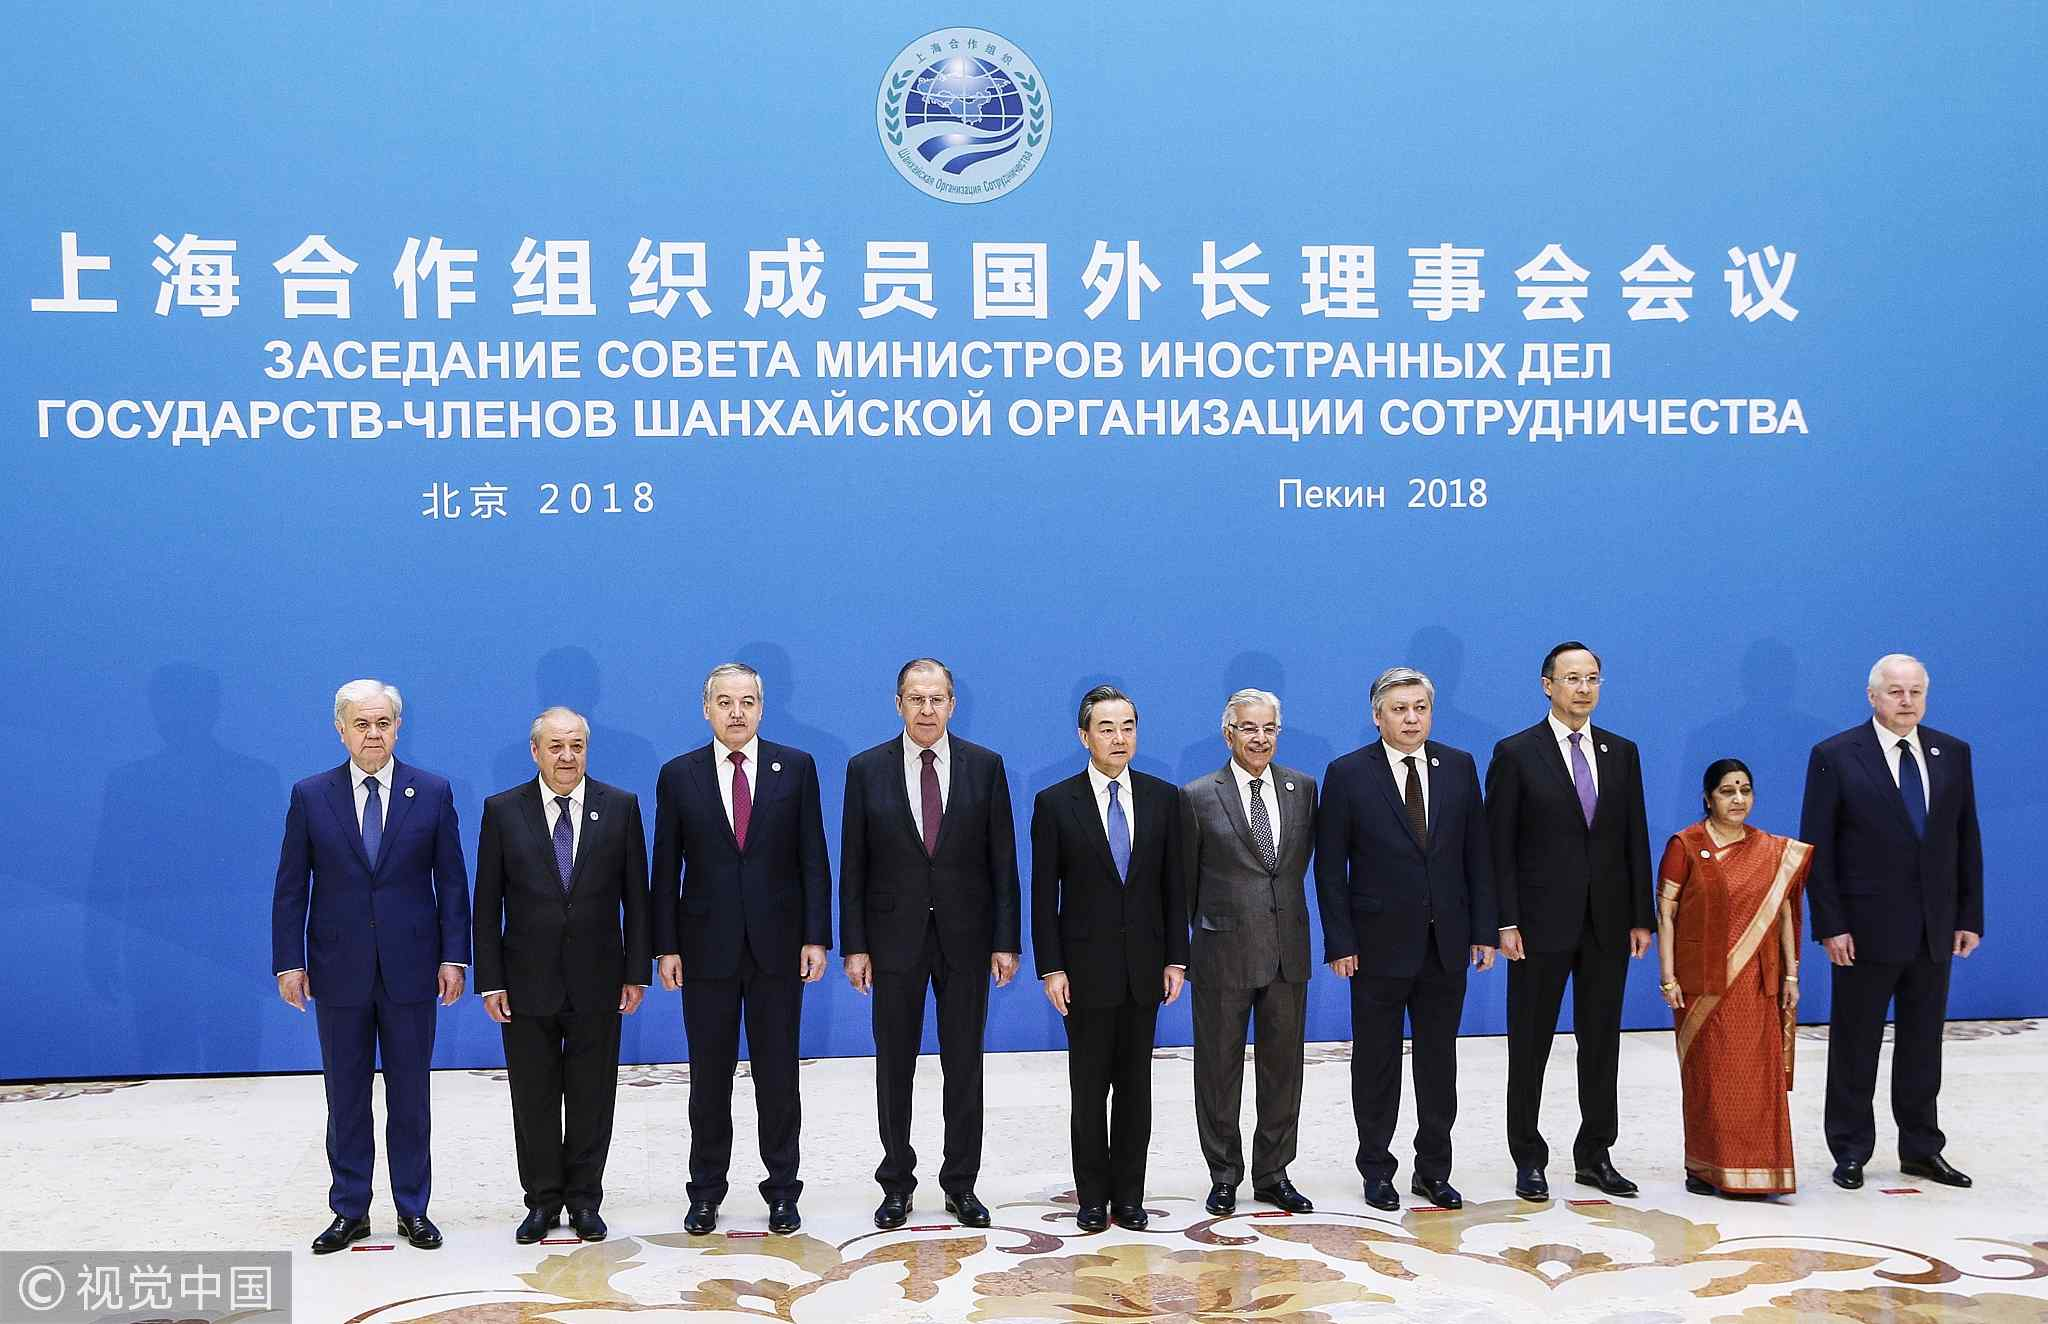 SCO Qingdao summit opens a new chapter in history